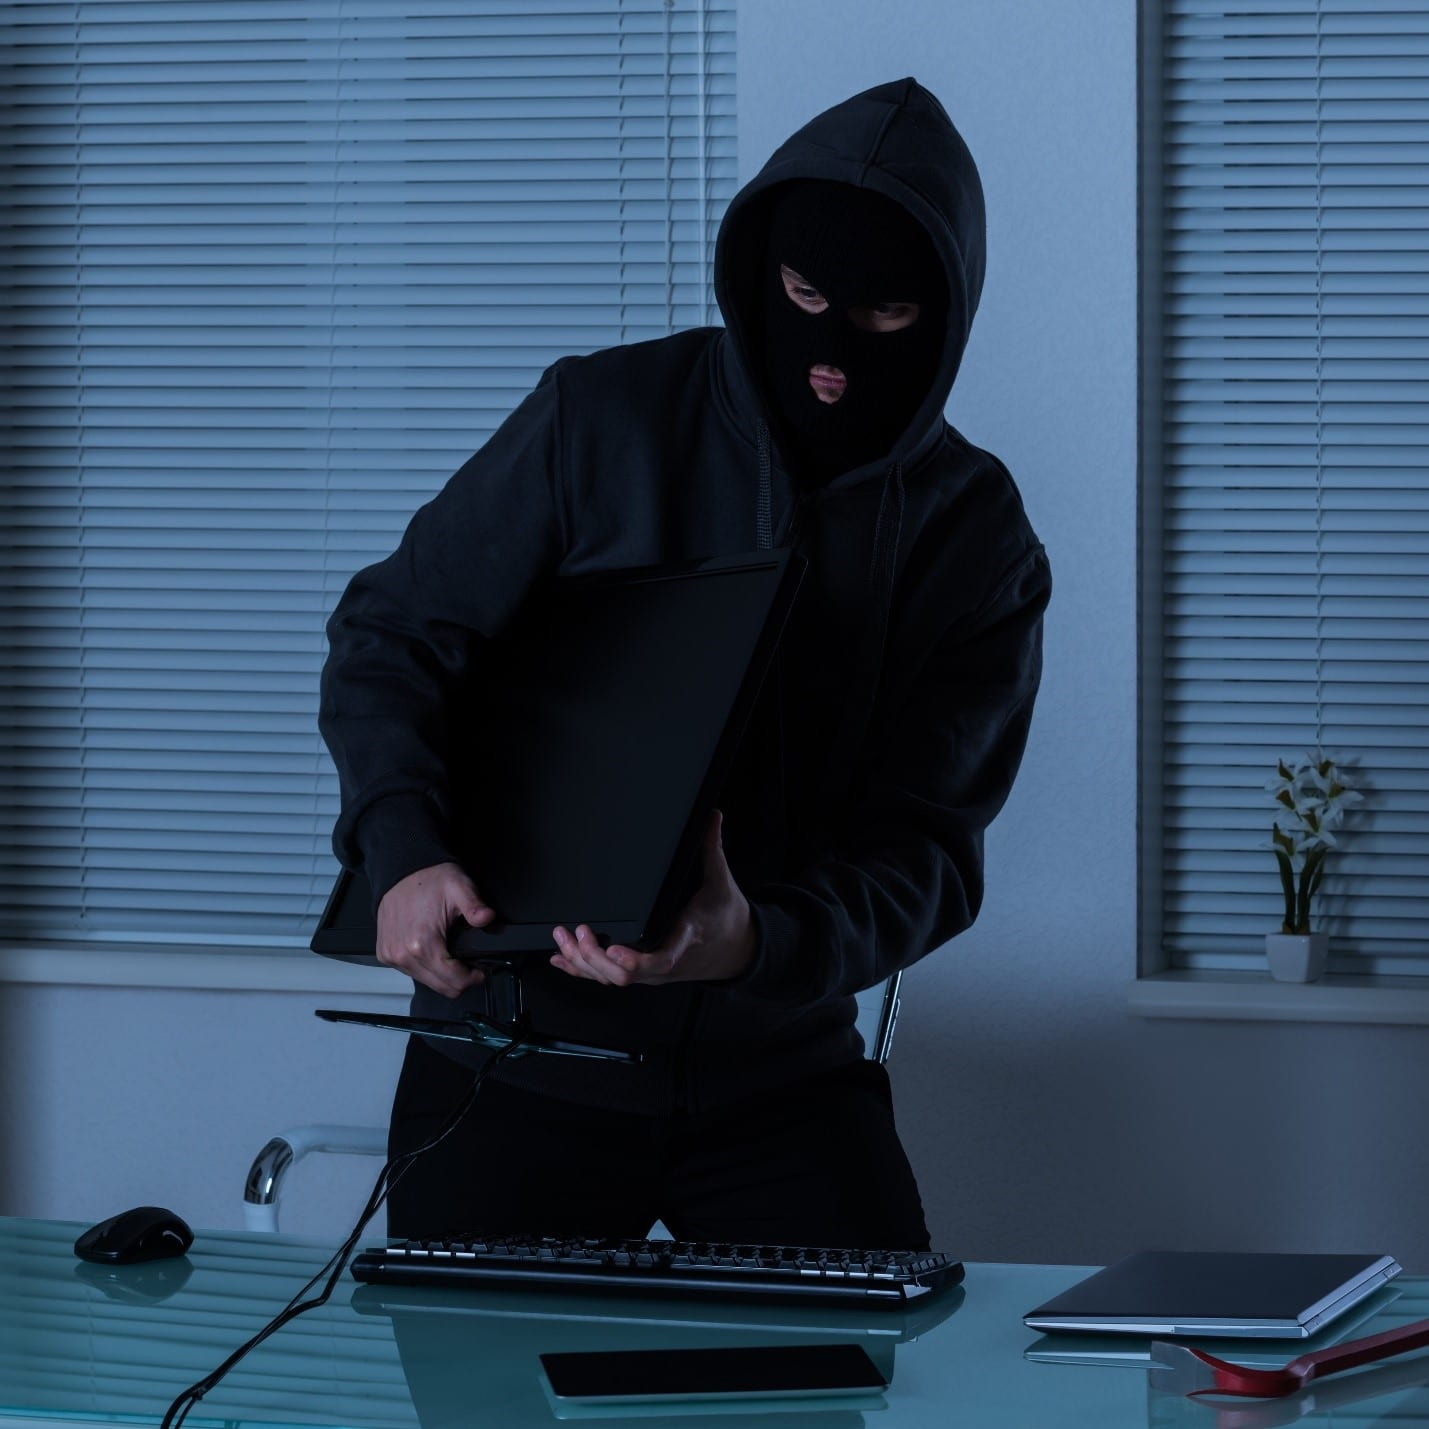 theft occuring in the home